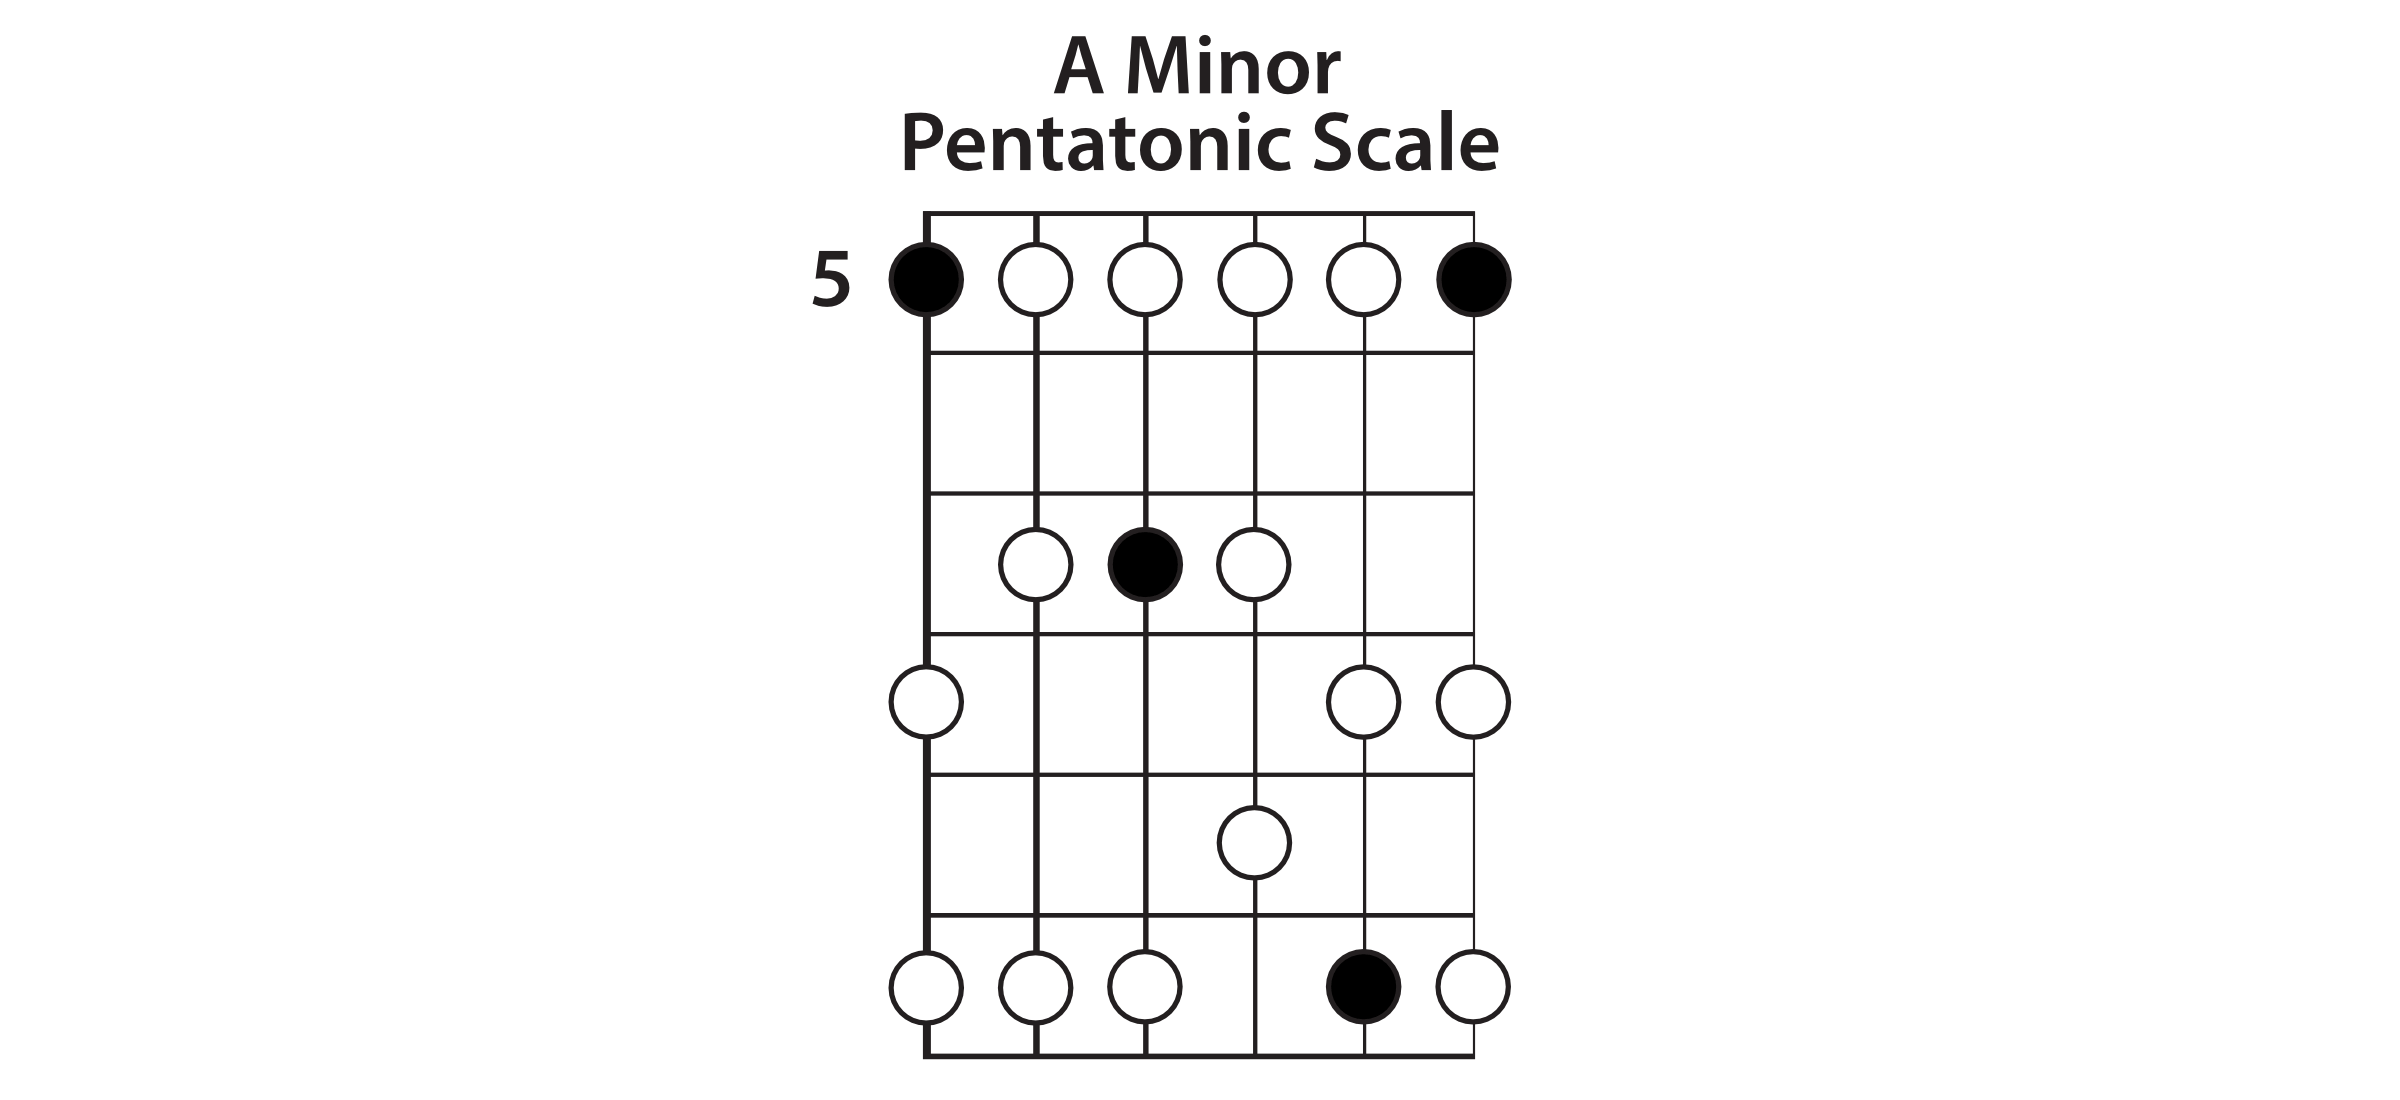 Extended A Minor Pentatonic Scale